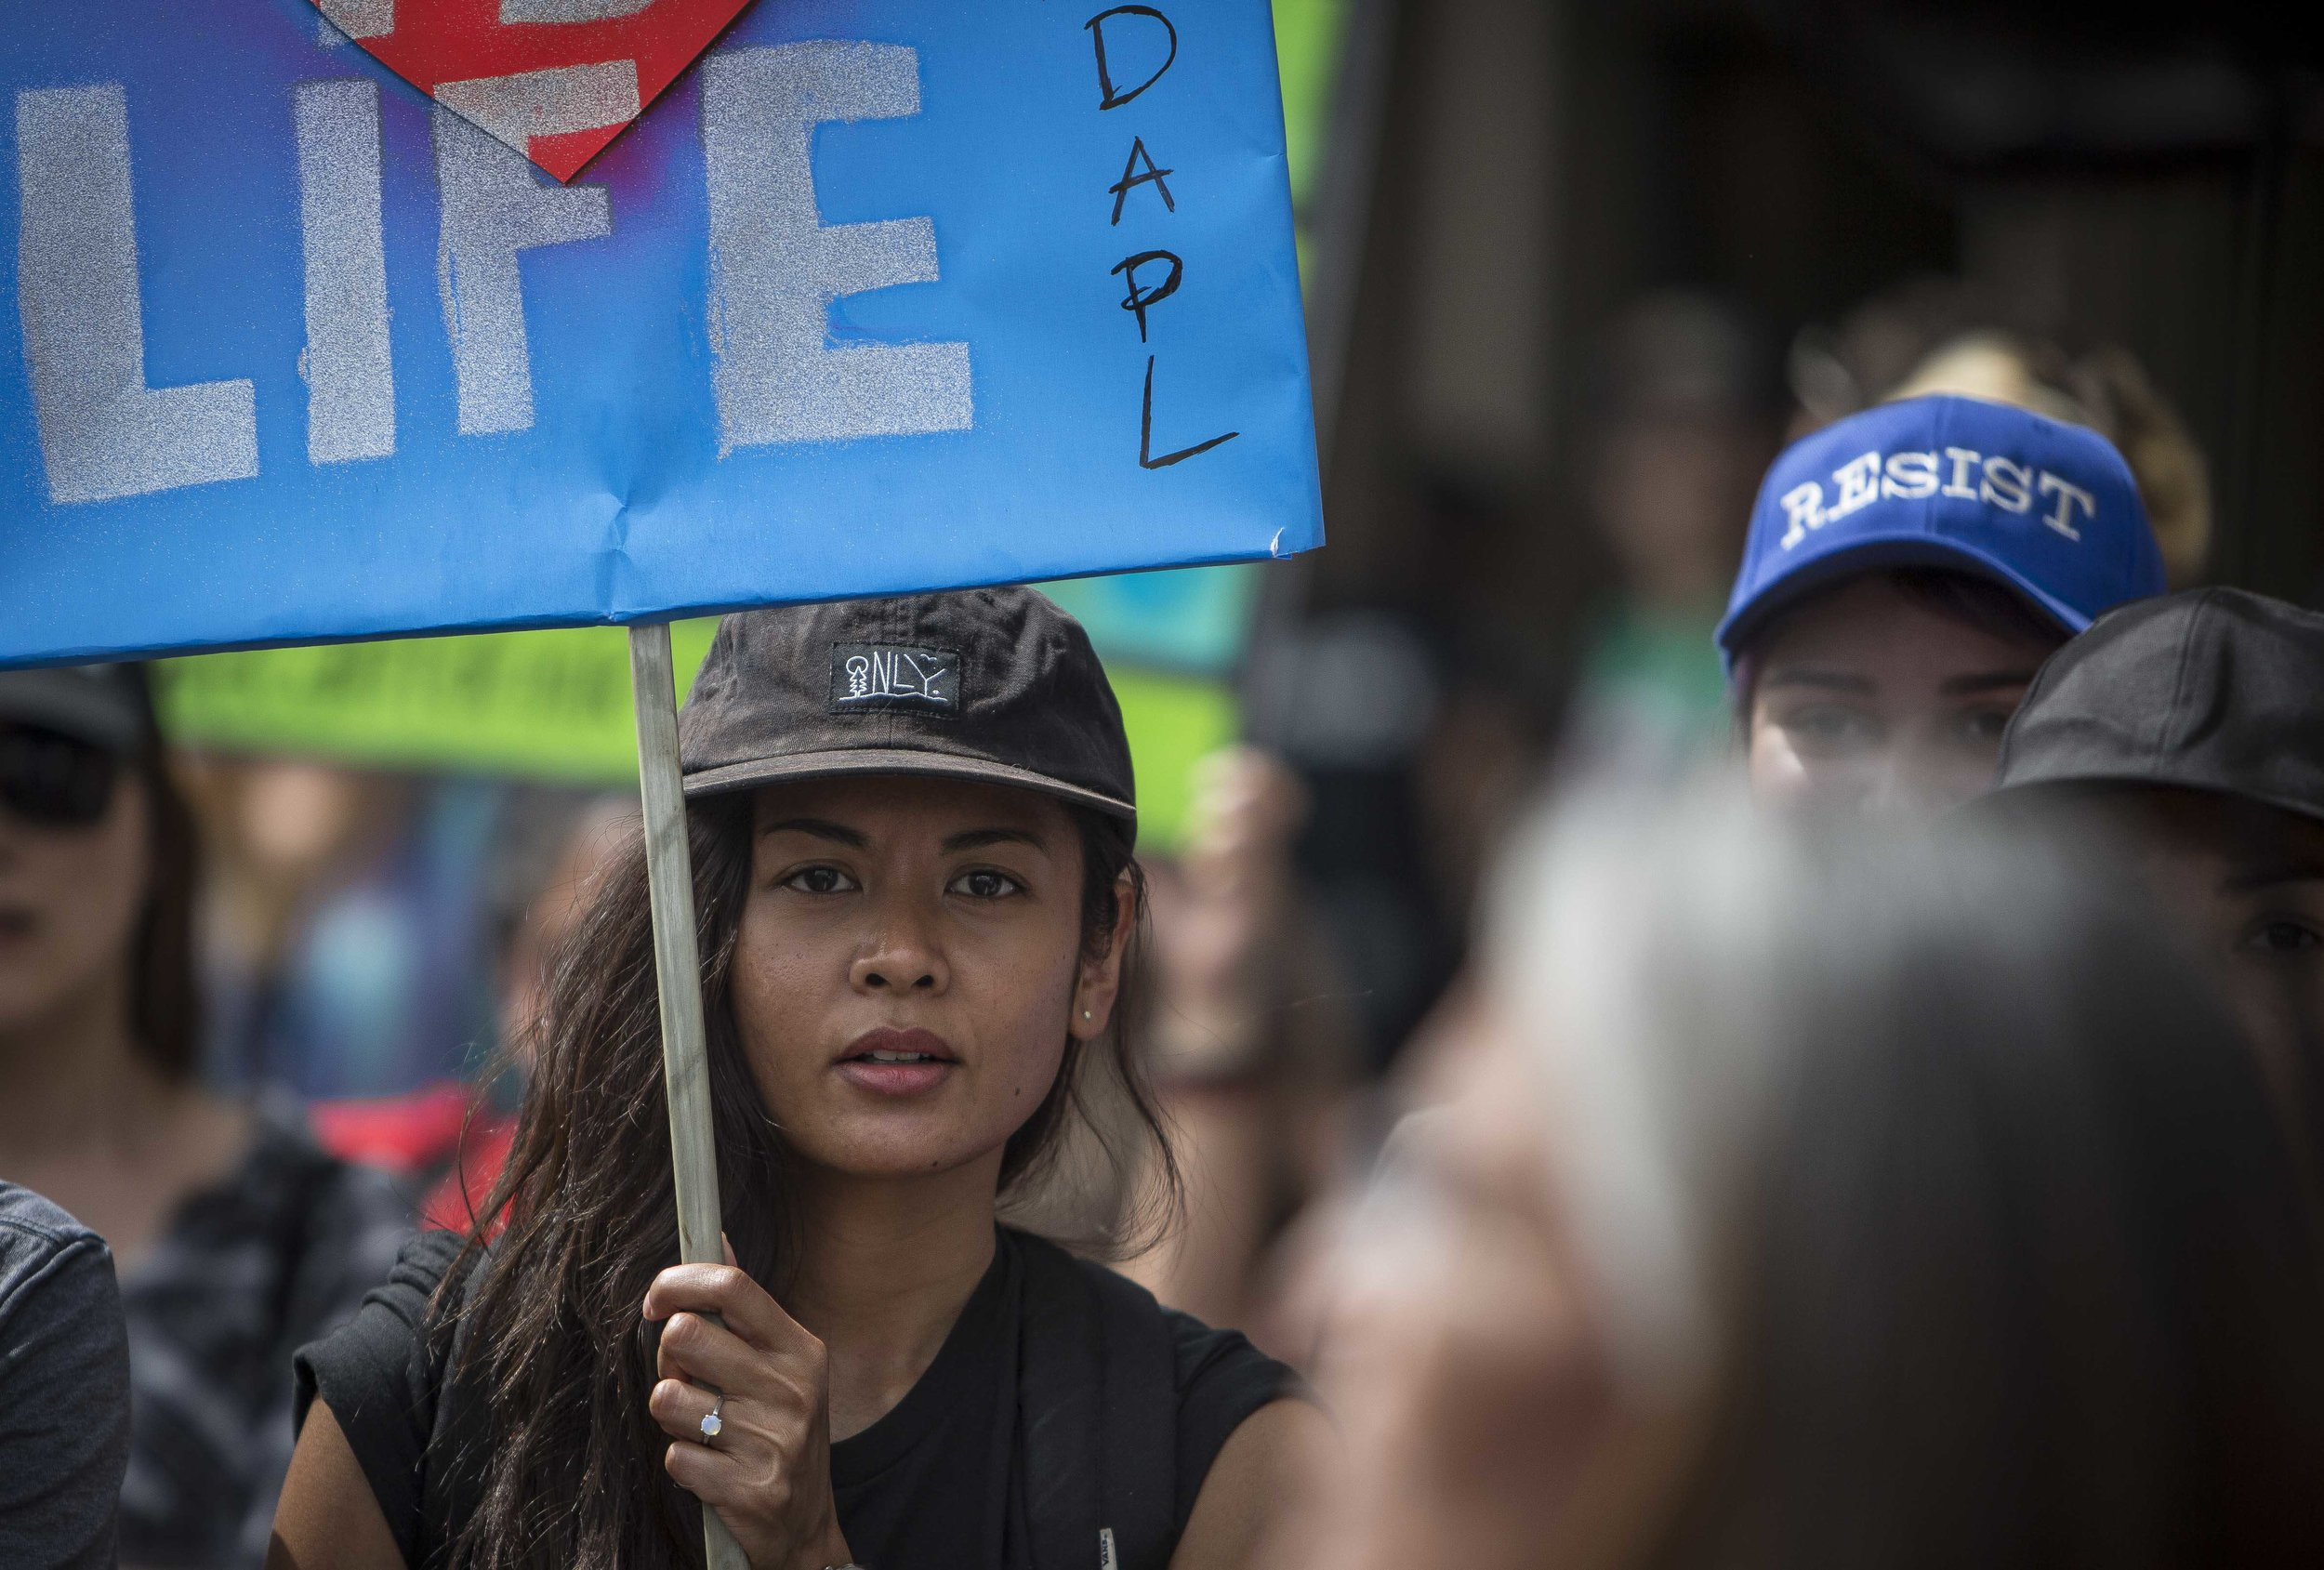 An protester holdind a sign about the Dakota Access  Pipeline prepaing to march from Pershing Square to City Hall in Downtown Los Angles, Calif., on Friday March 10, 2017.  Photo by: Daniel/Corsair Staff